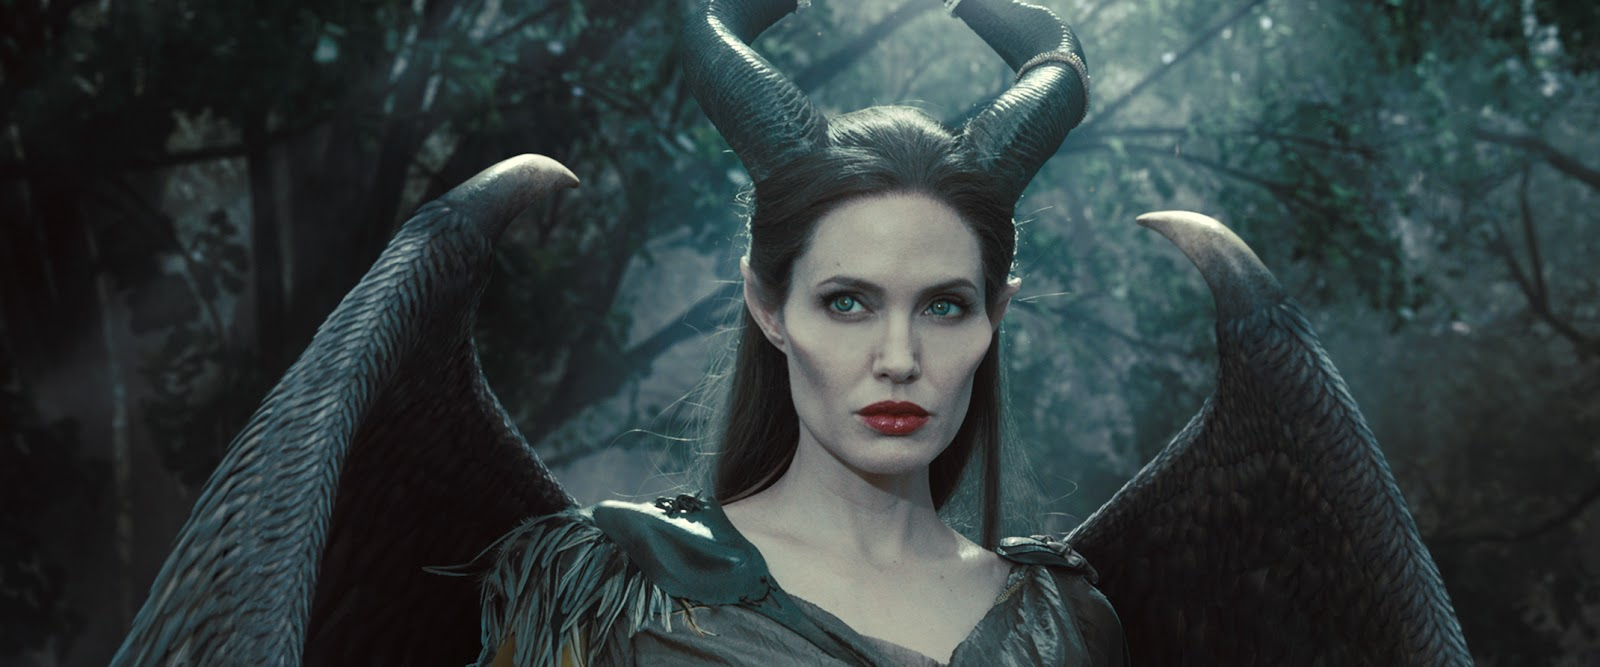 Gambar Maleficent Animasi Bergerak Walt Disney Angelina Jolie Movie